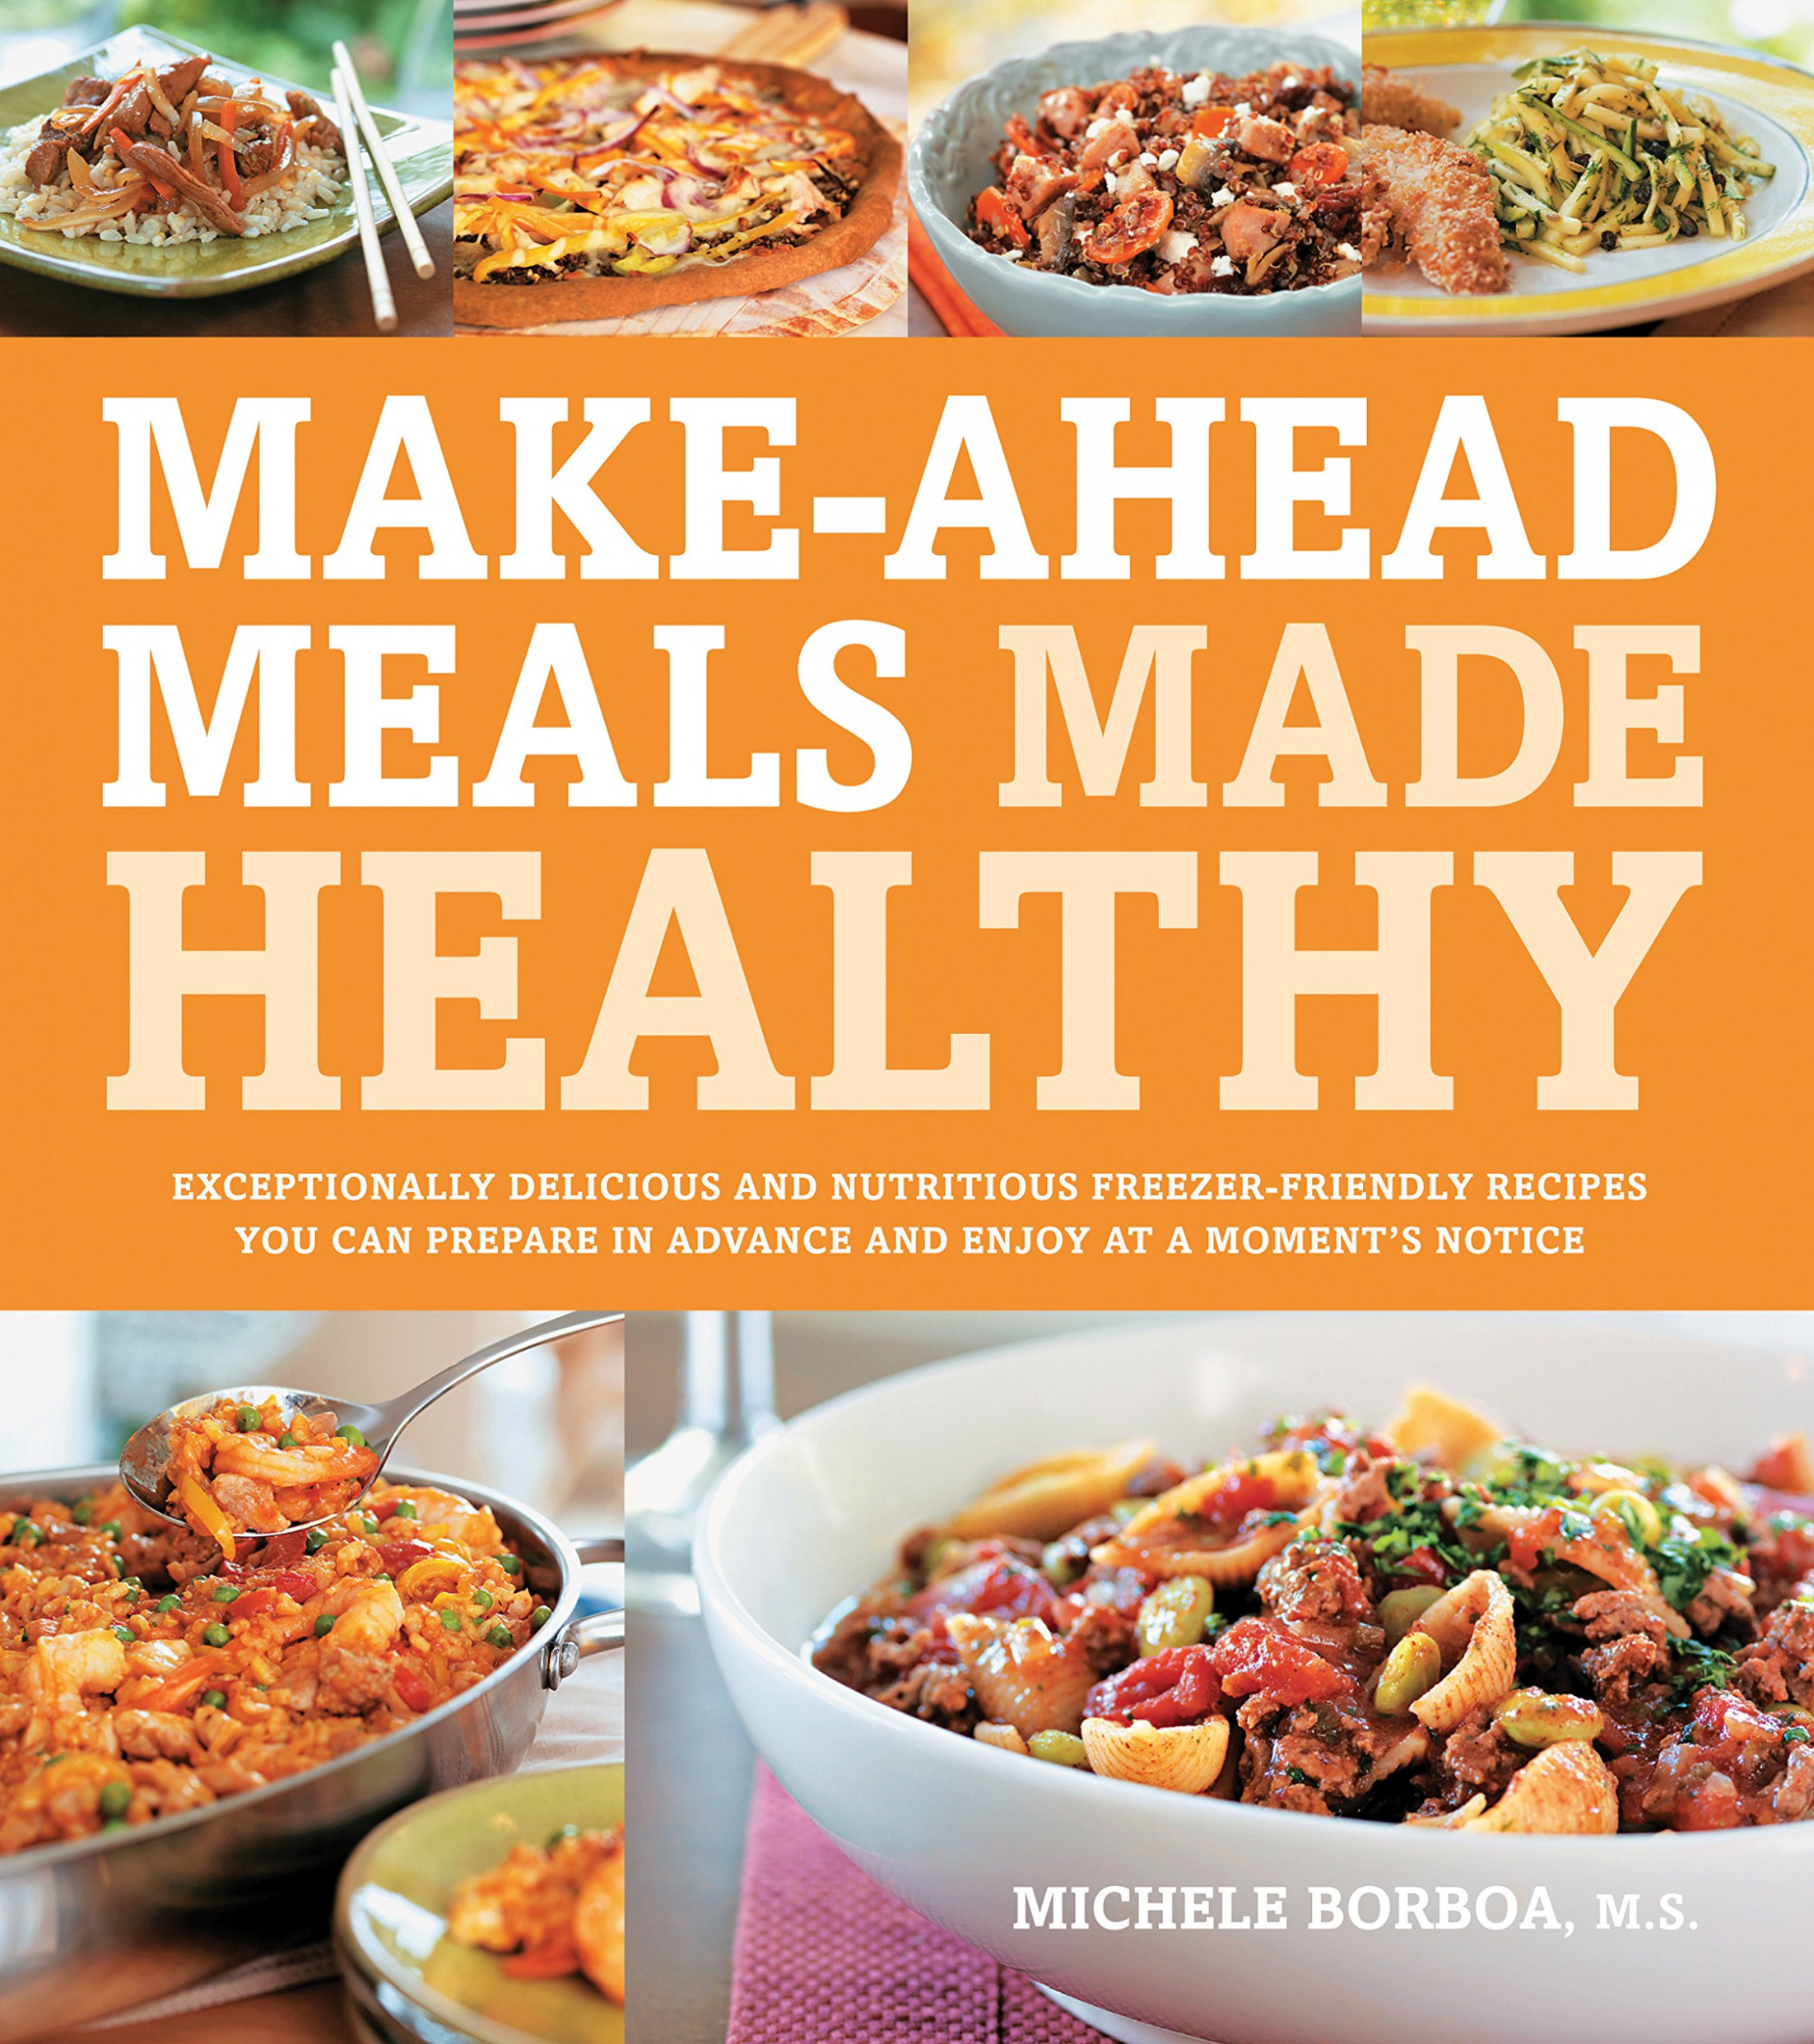 Make-Ahead Meals Made Healthy: Exceptionally Delicious and ..